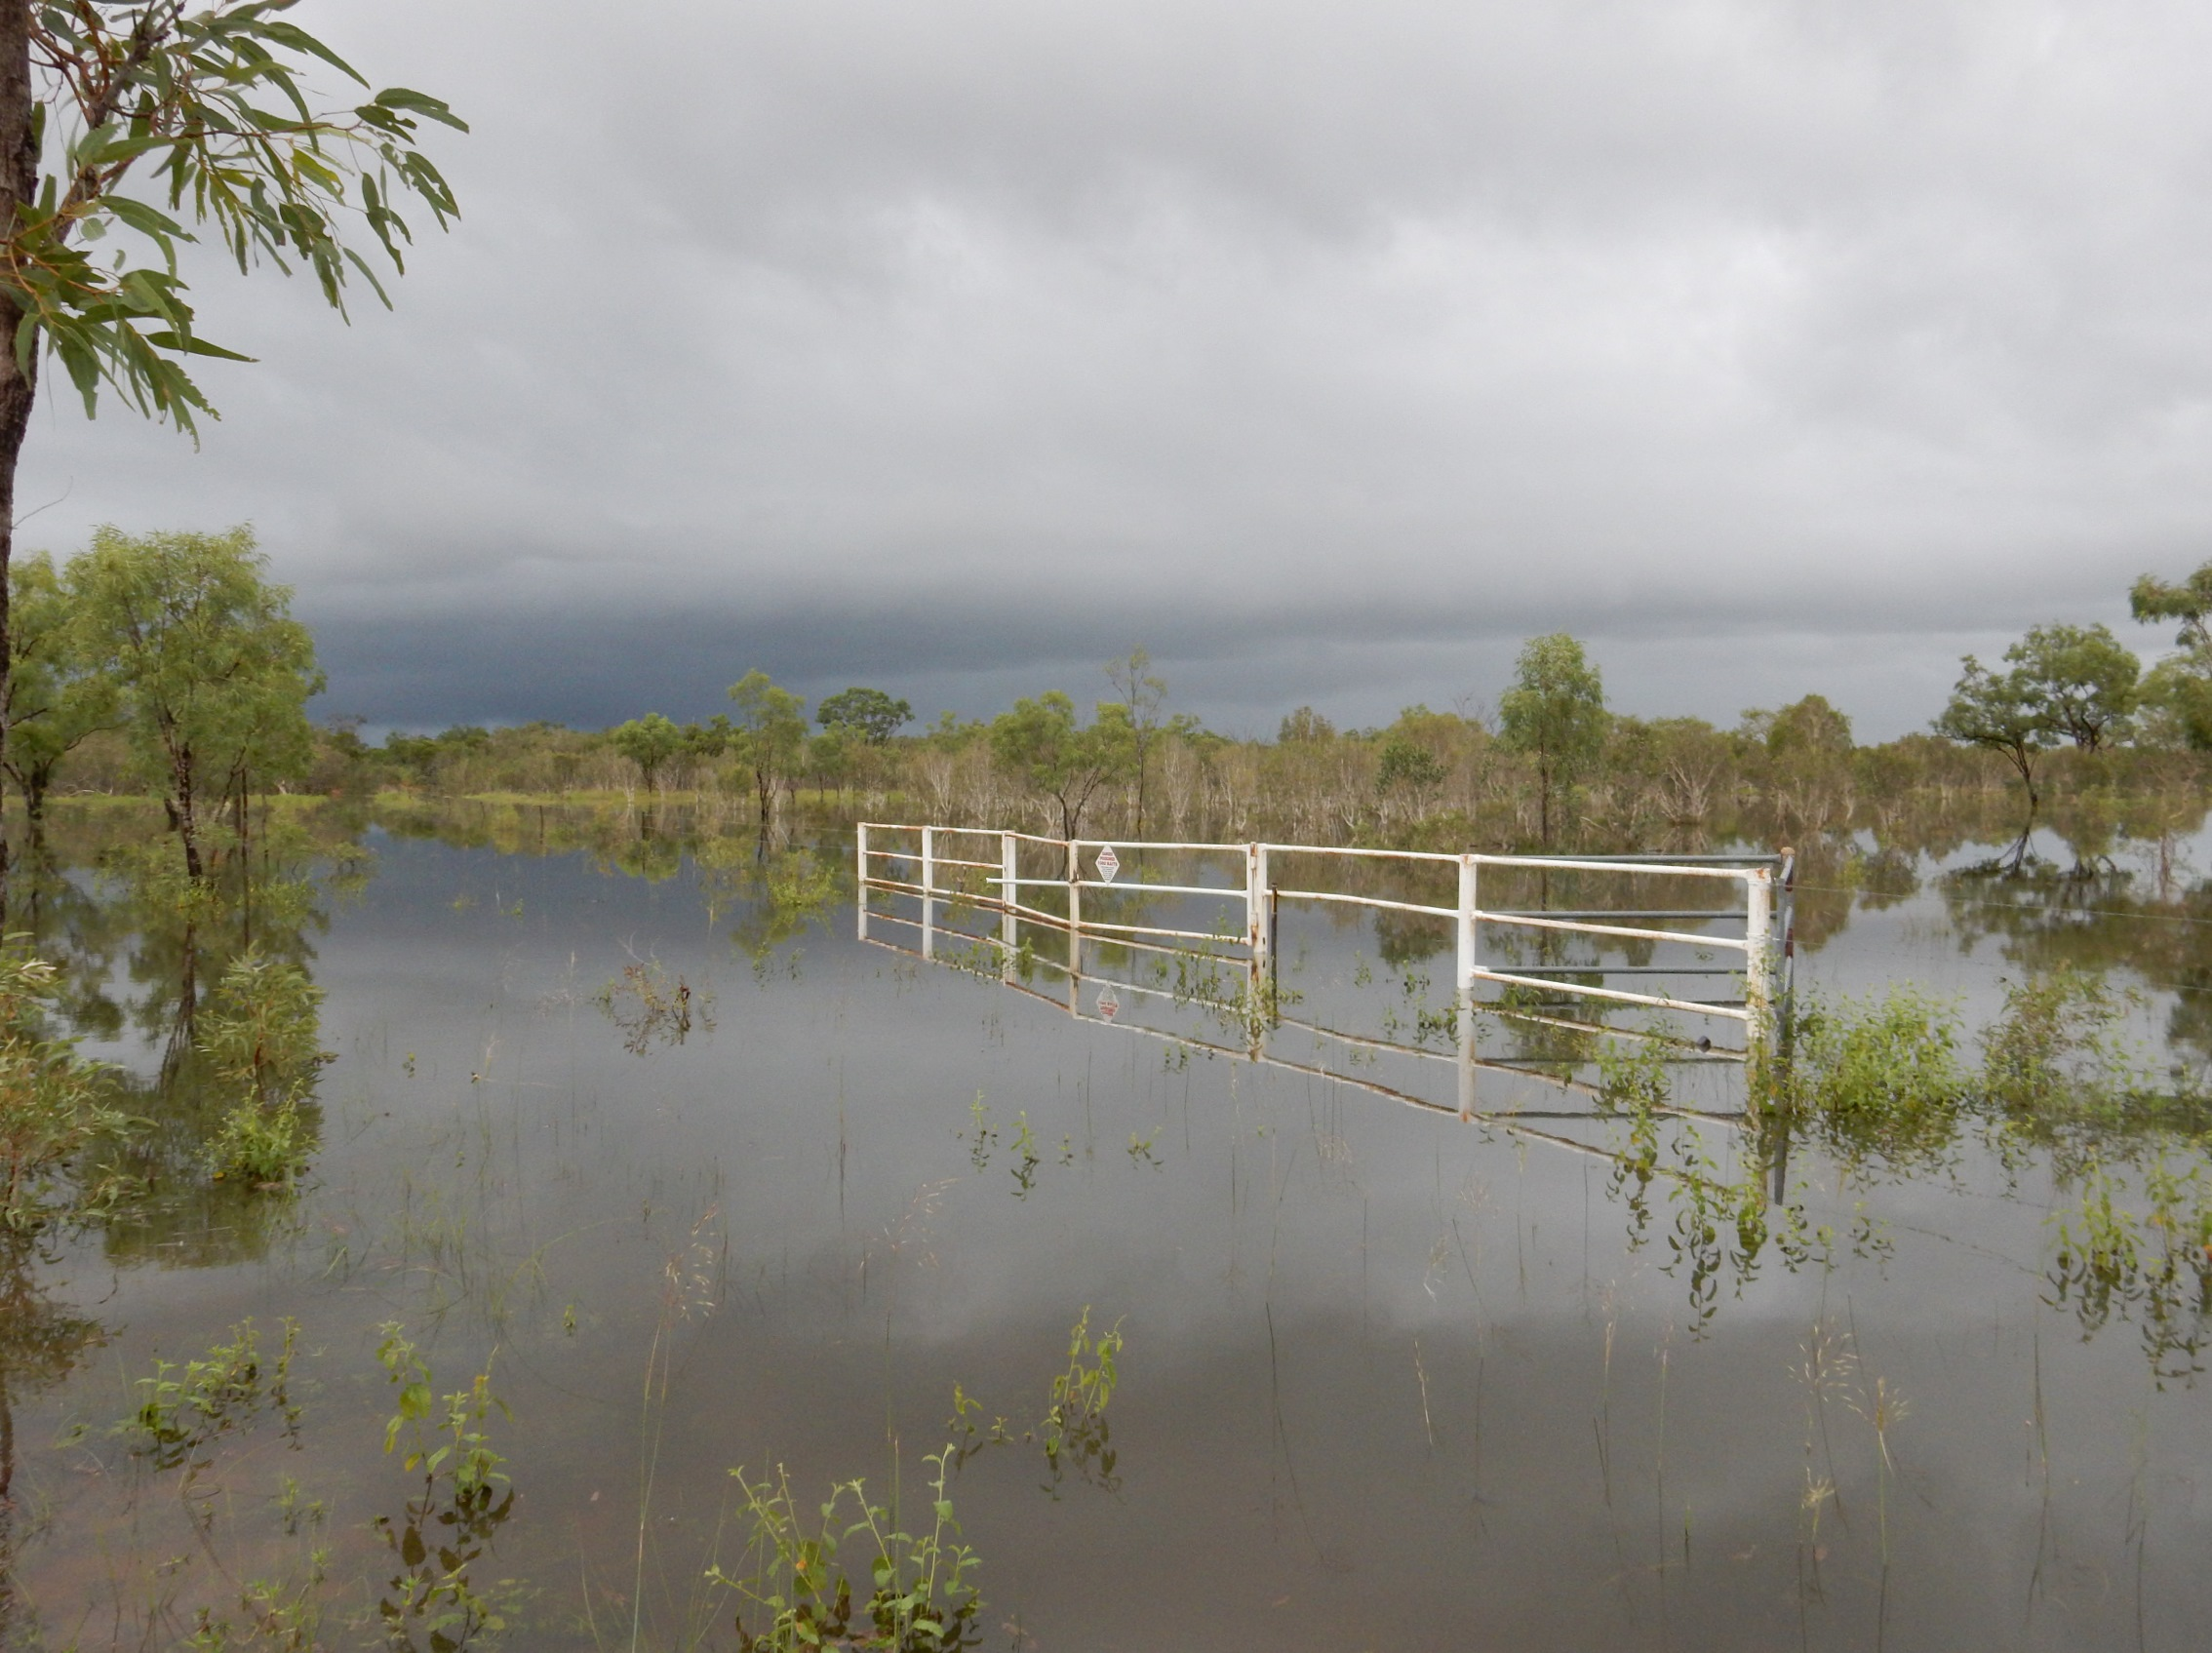 The Taylor's Lagoon gate in February. Guess we'll walk in then. Photo: John Graff